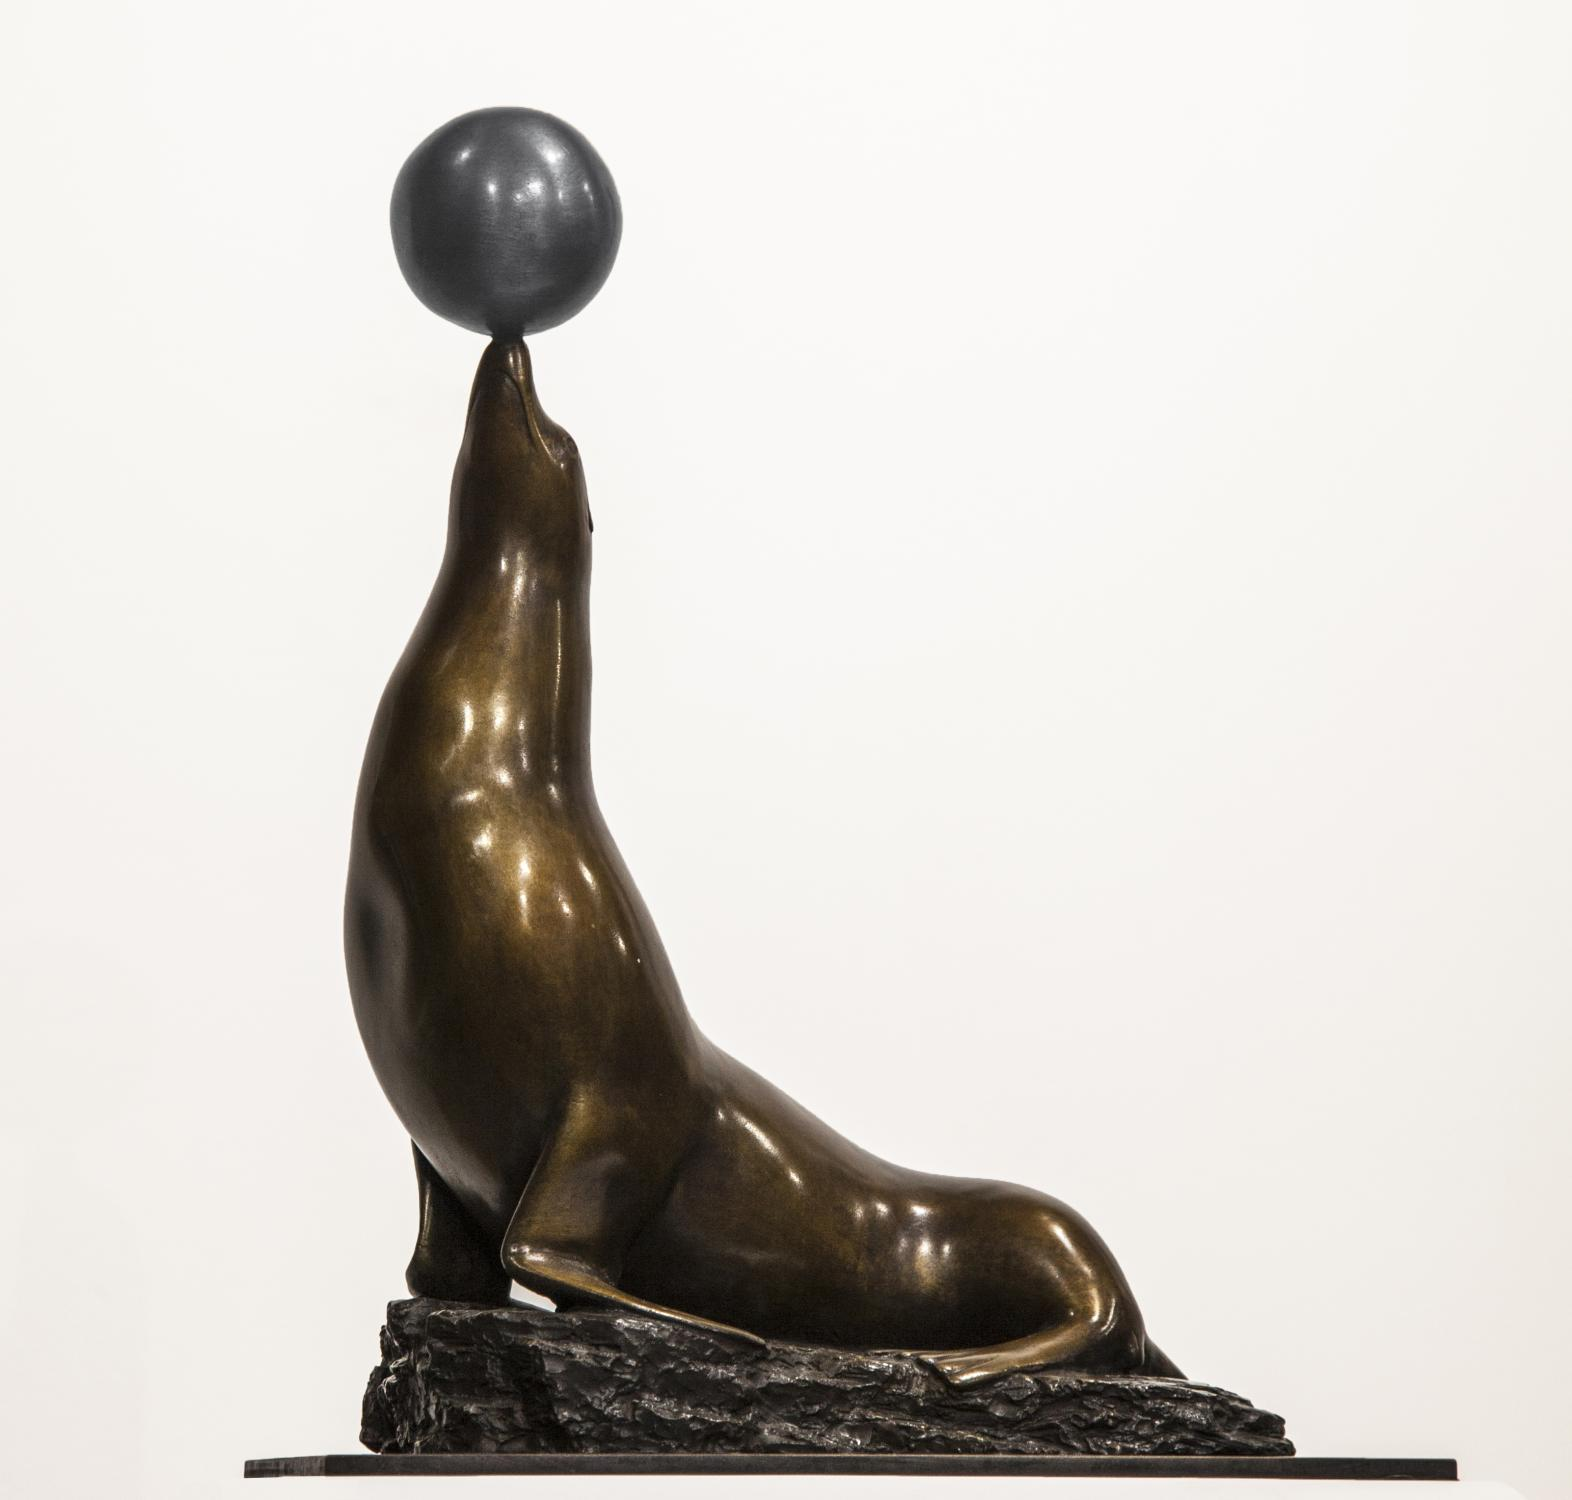 Lot 27 - Sculpture: David Norris, Circus Seal With Ball, Bronze , Signed, 34cm high by 24cm wide by 14cm